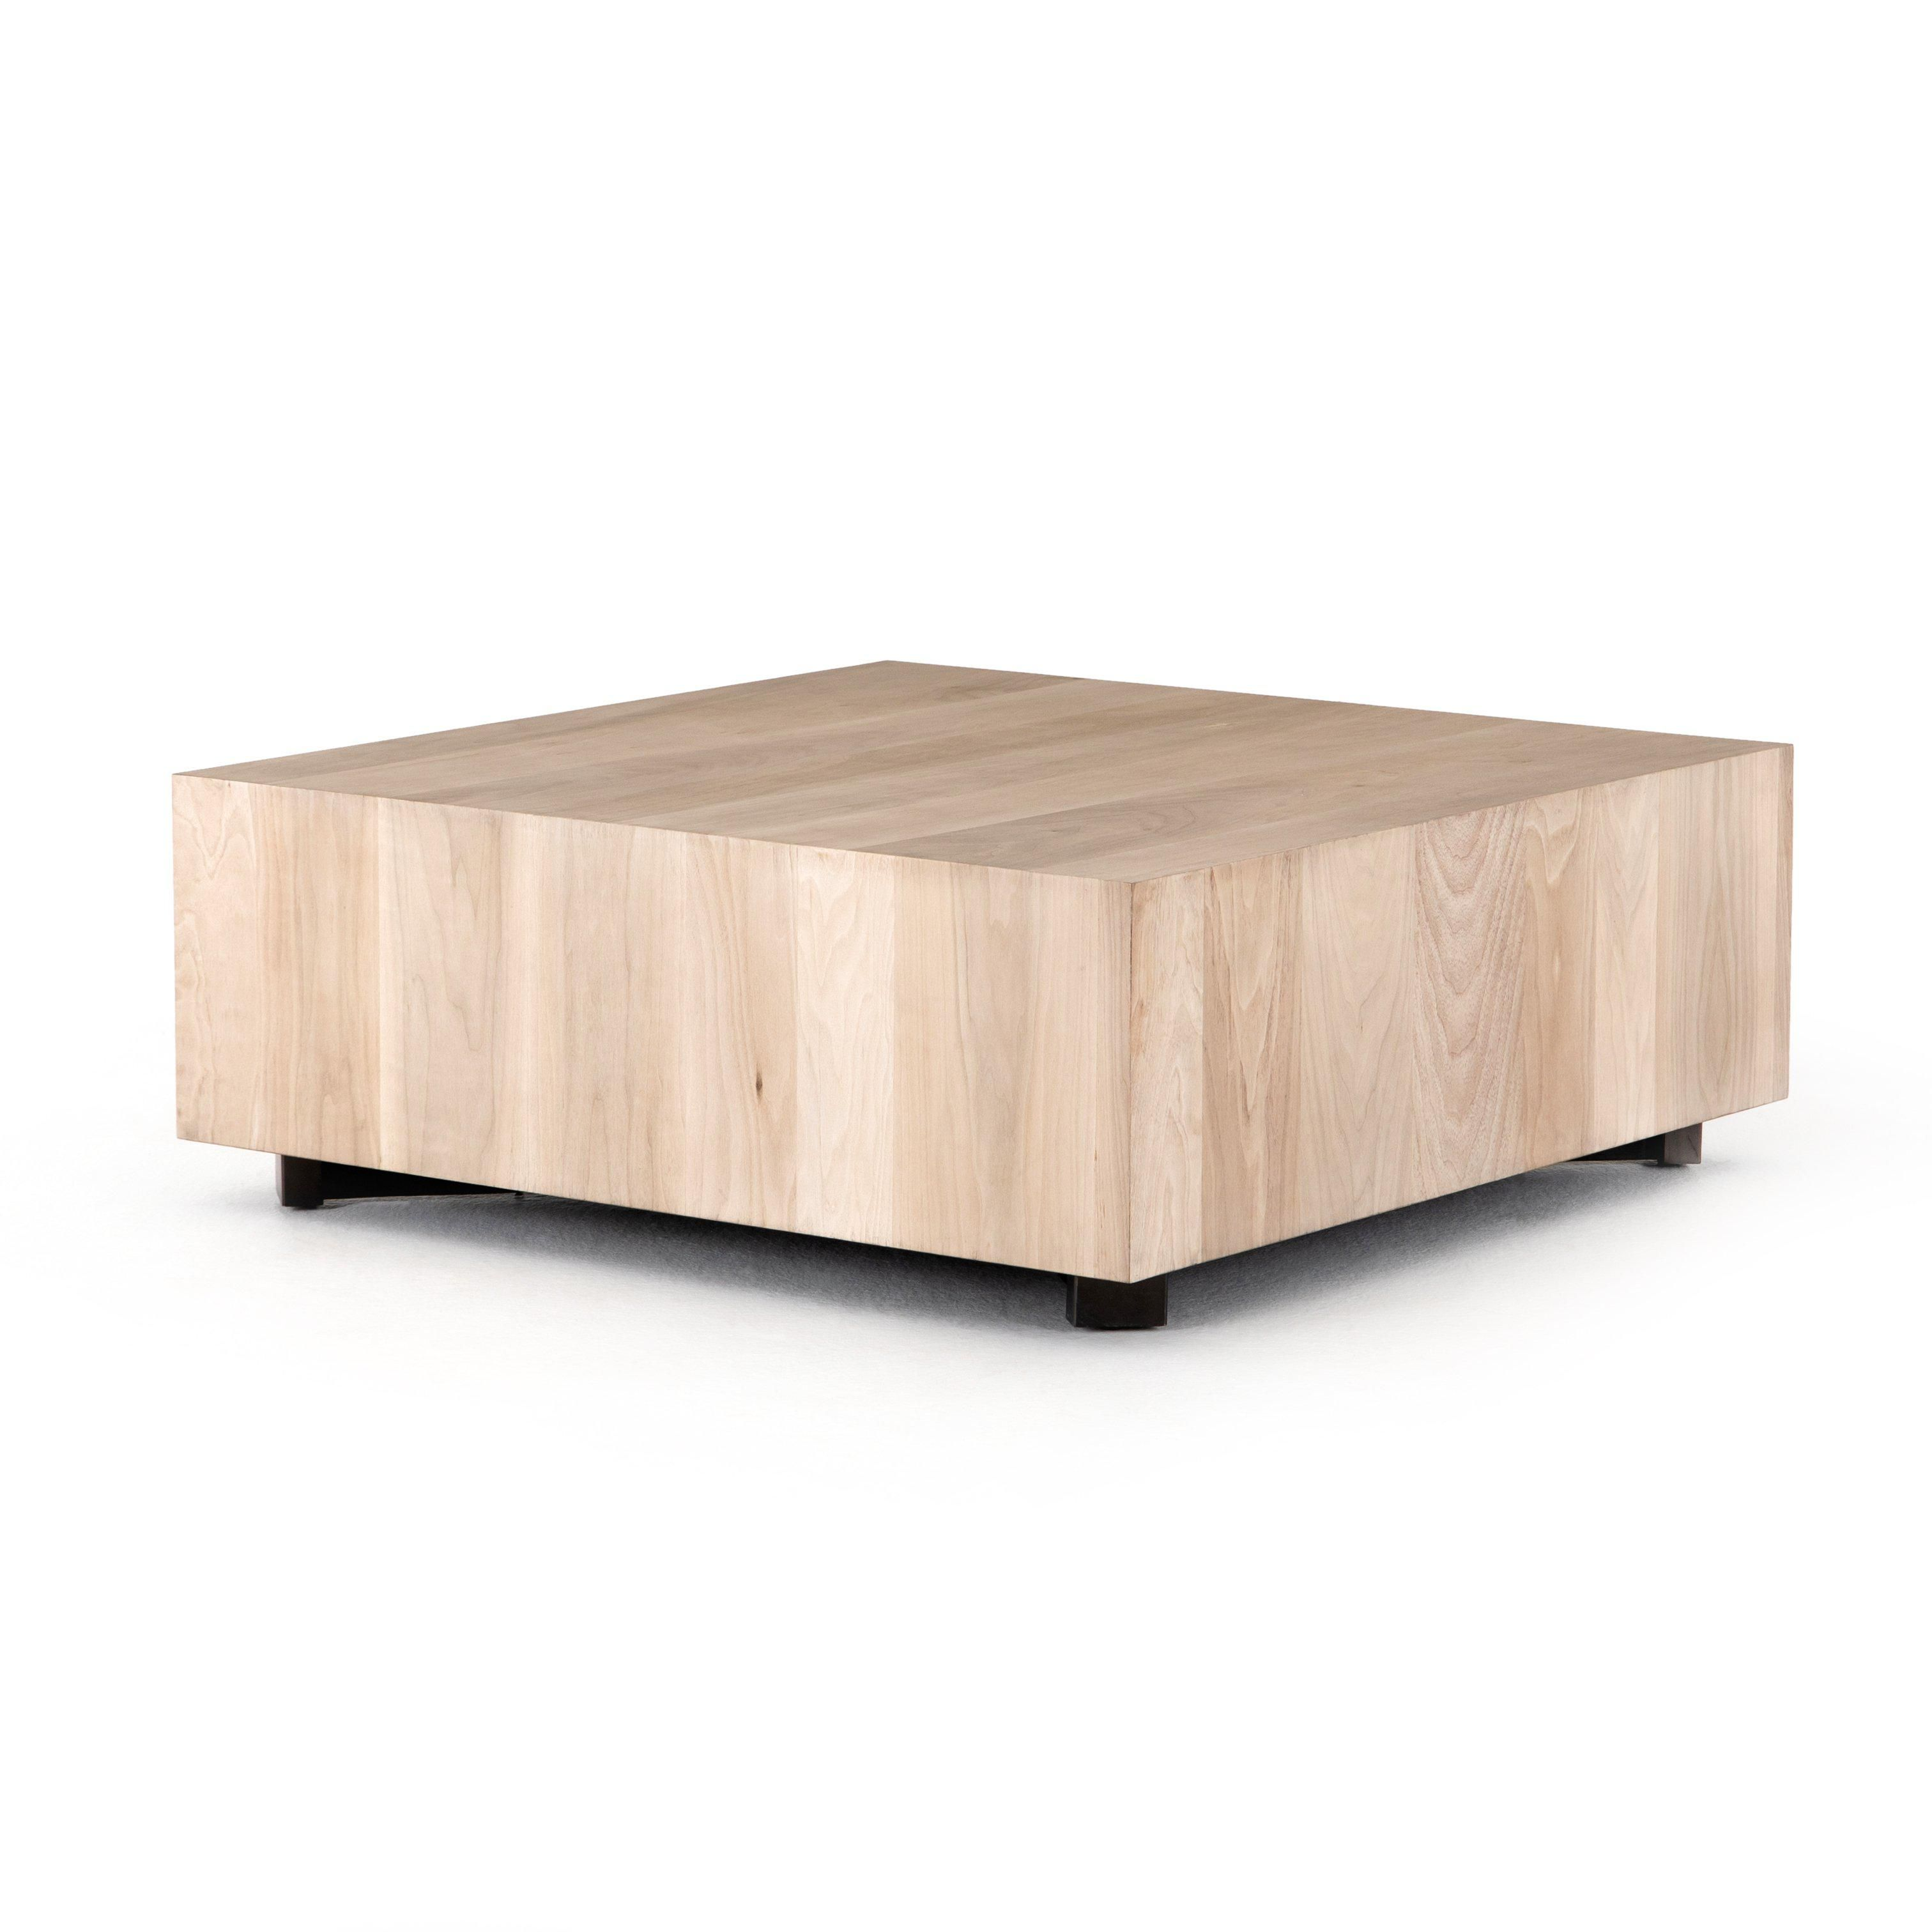 Hudson 40 Coffee Table Coffee Table Square Coffee Table Wood [ 3024 x 3024 Pixel ]